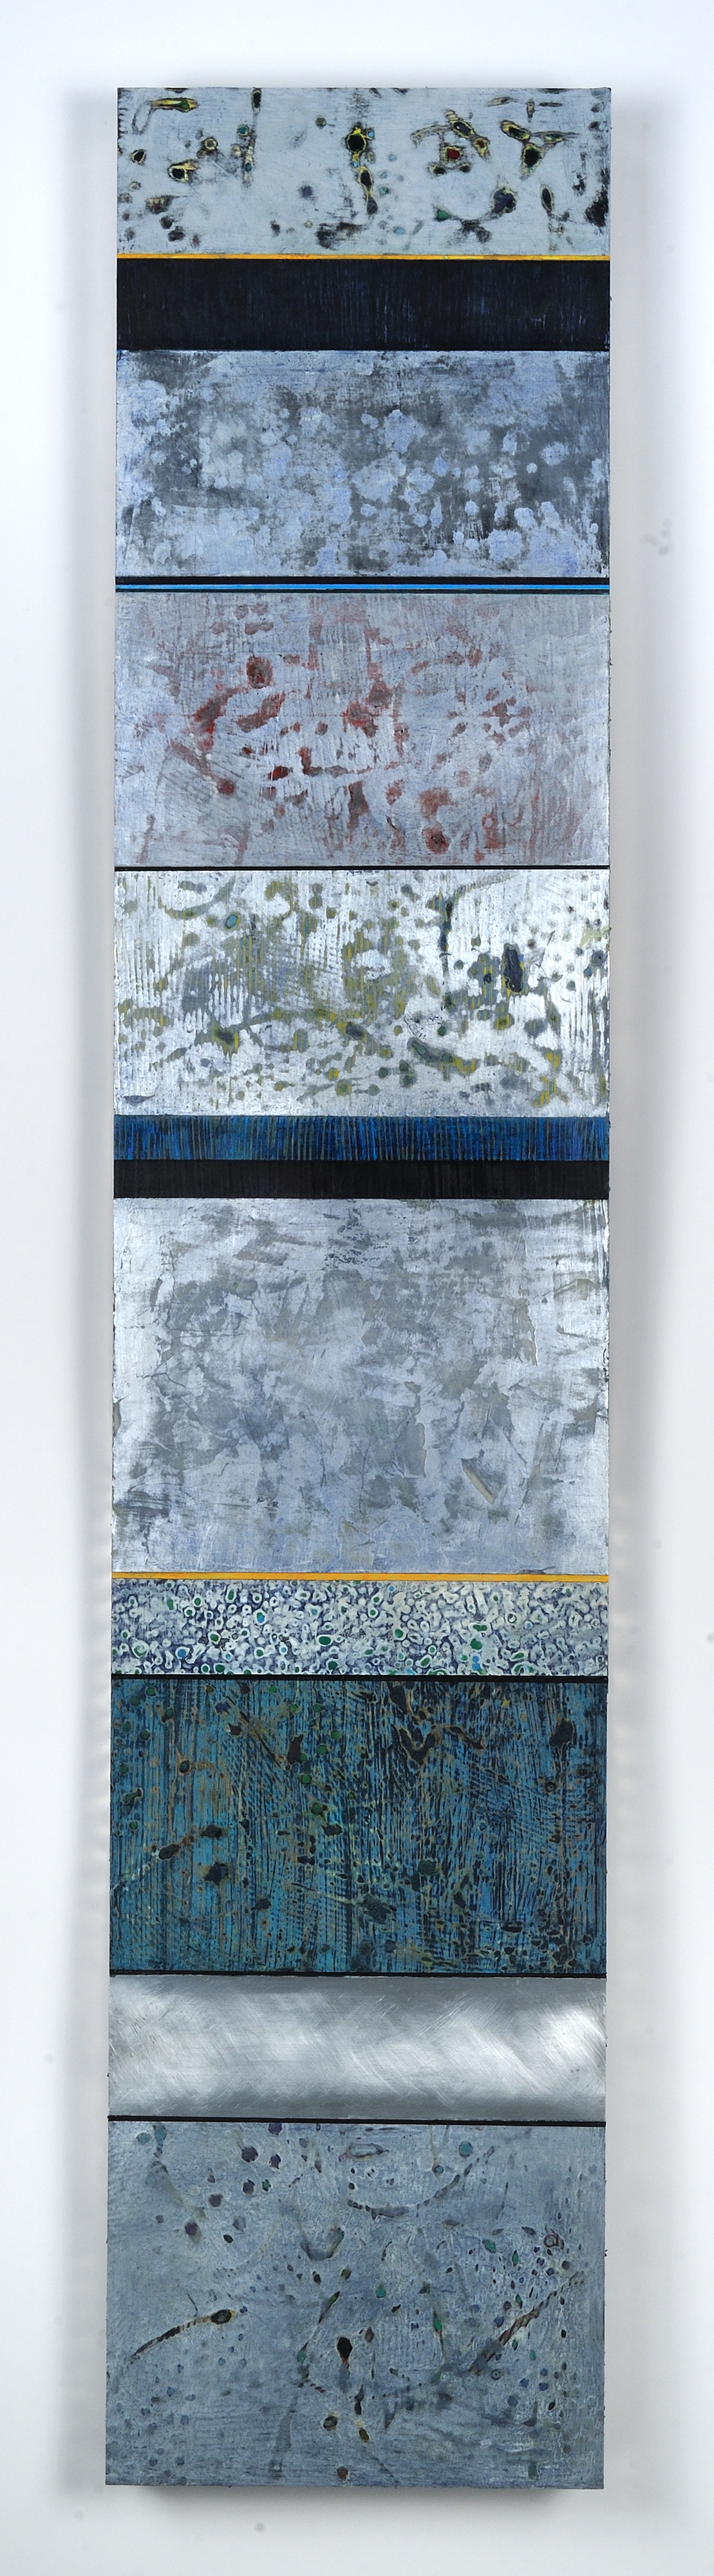 Strata 15 -3, Acrylic and Wax on Aluminum Panel, 58 x 12